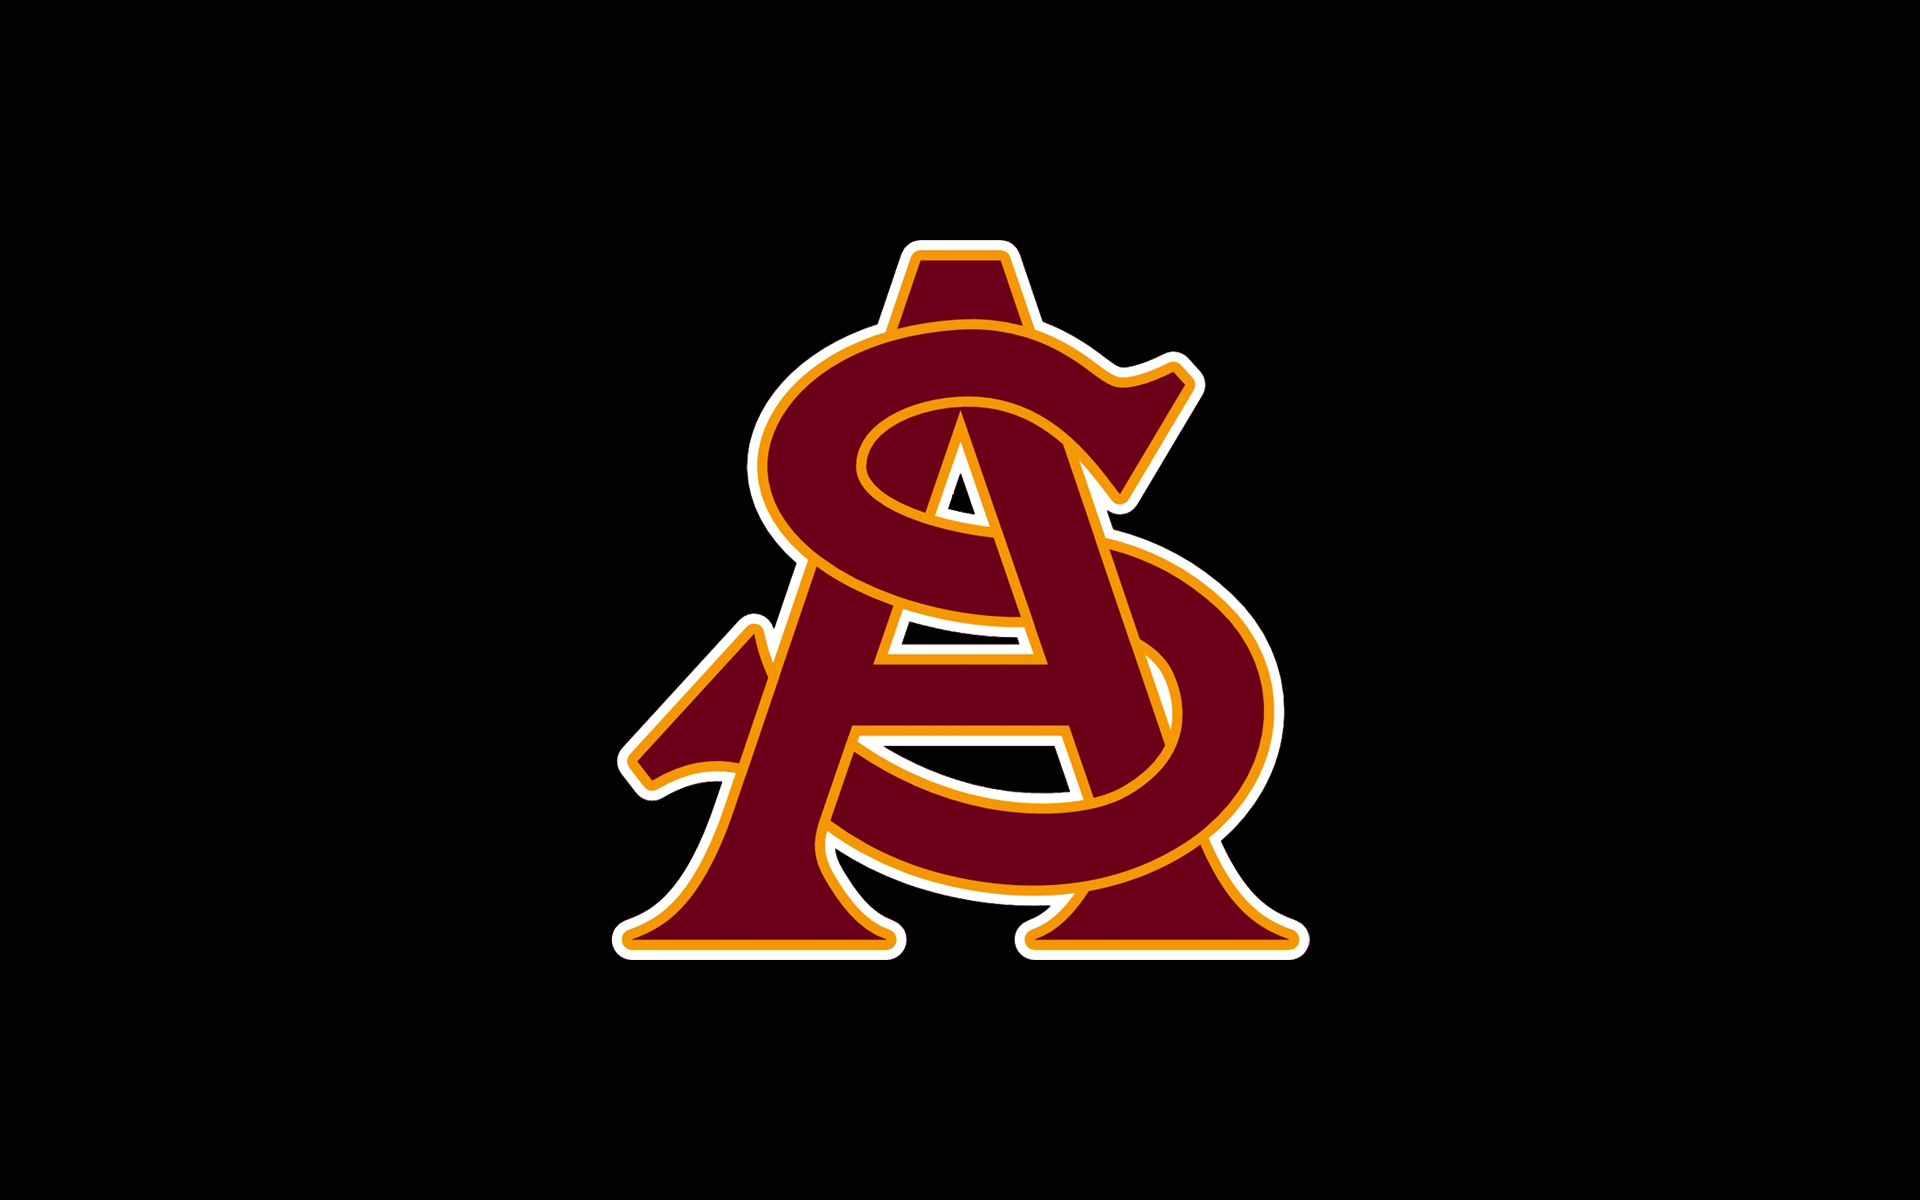 Arizona state university wallpaper Group (43+)